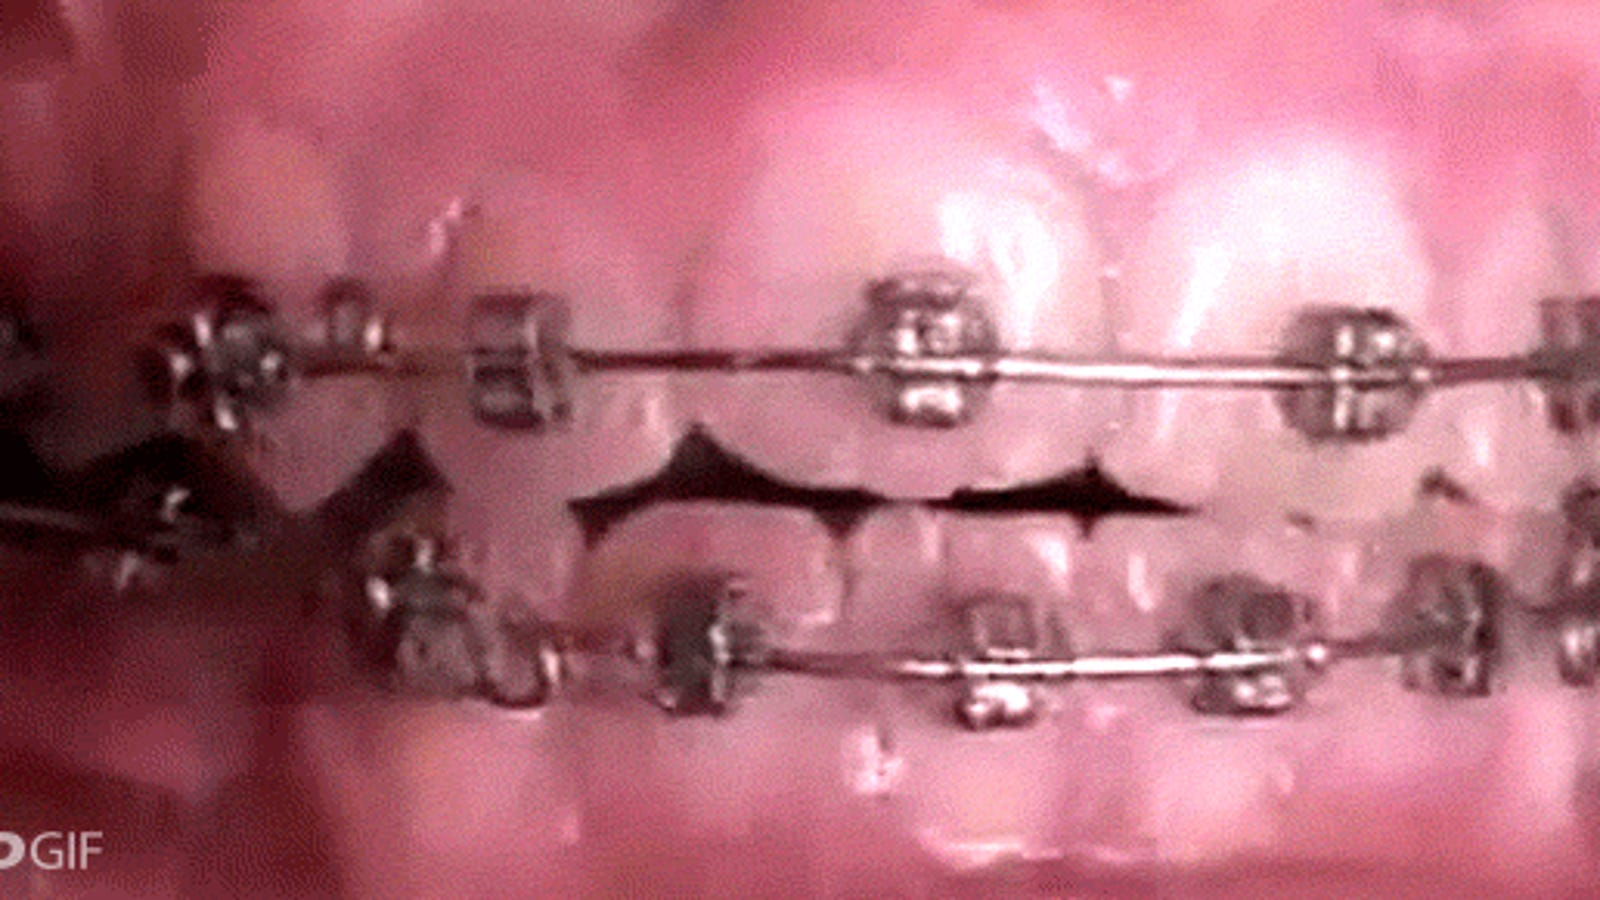 Video: How braces can amazingly straighten crooked teeth